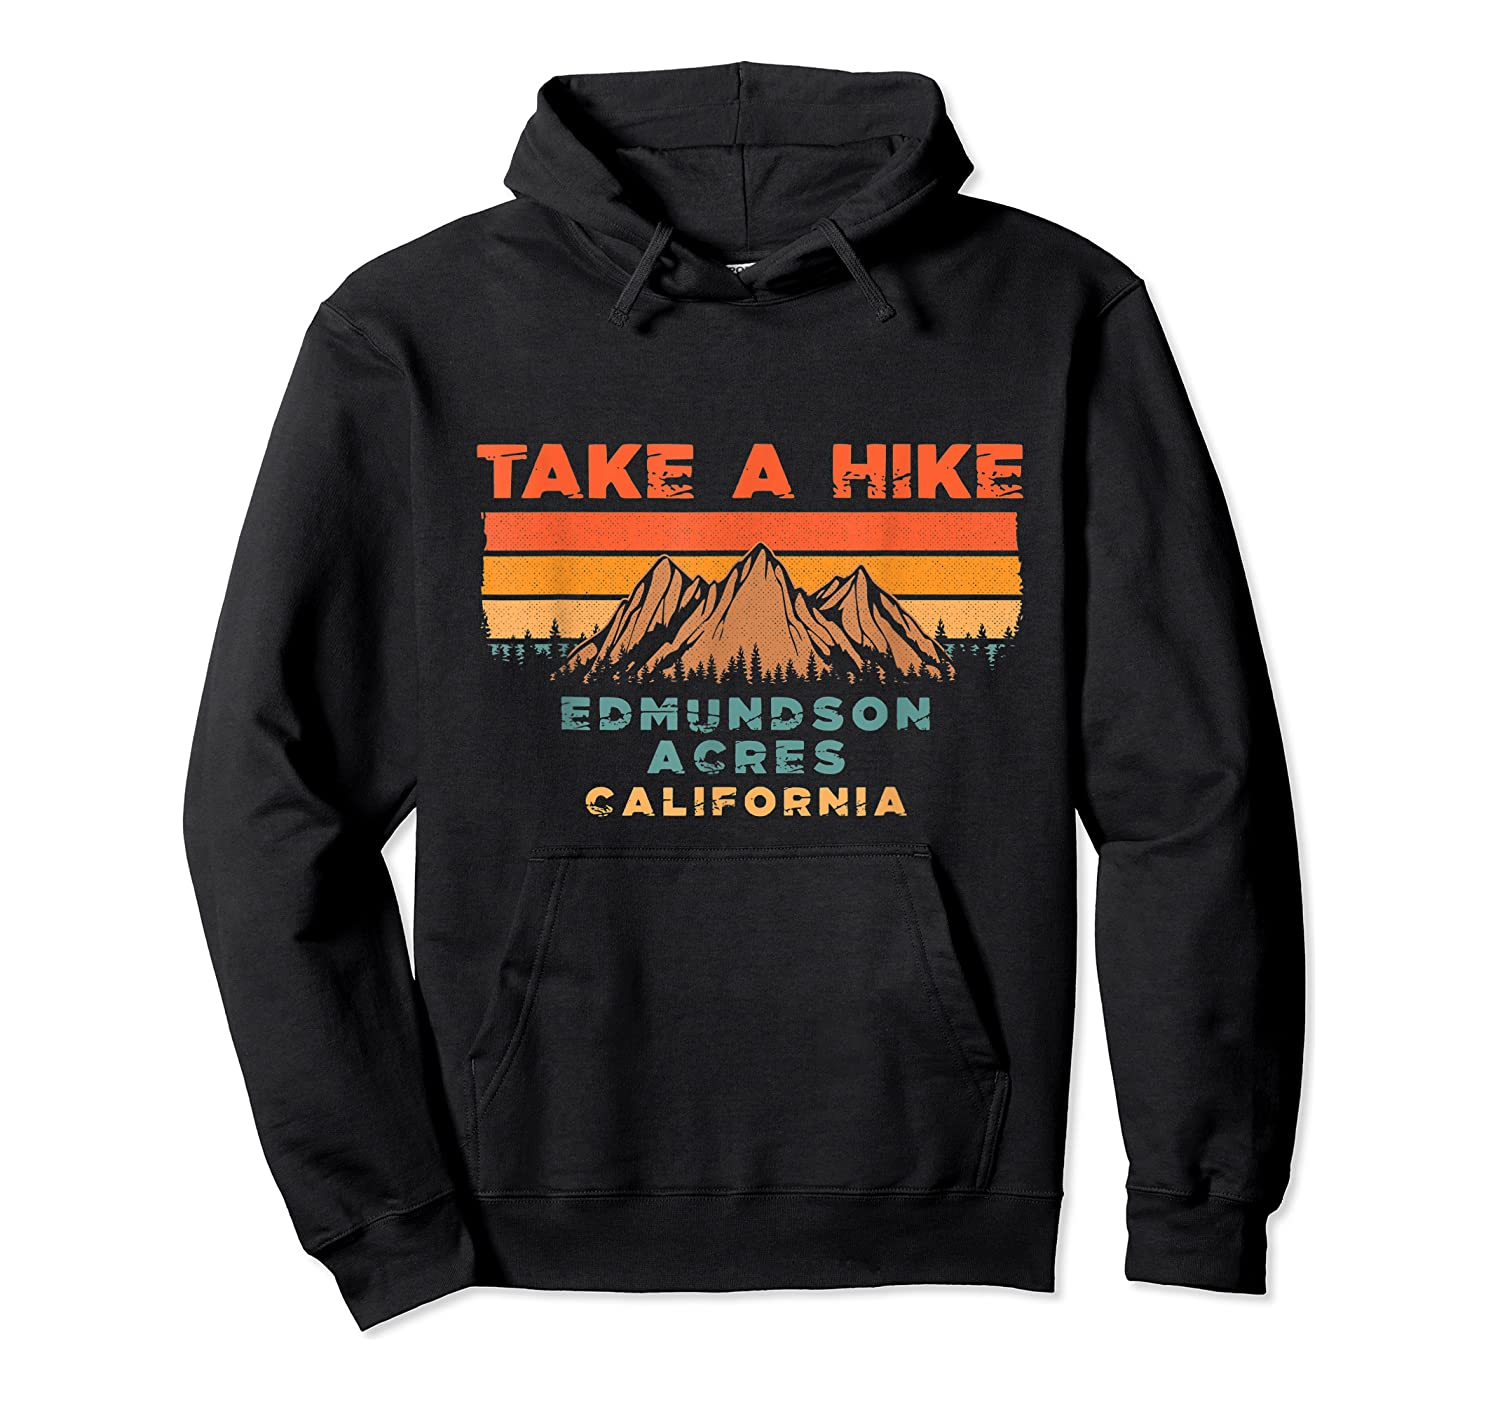 California Vintage Take A Hike Edmundson Acres Moutain T-shirt Unisex Pullover Hoodie